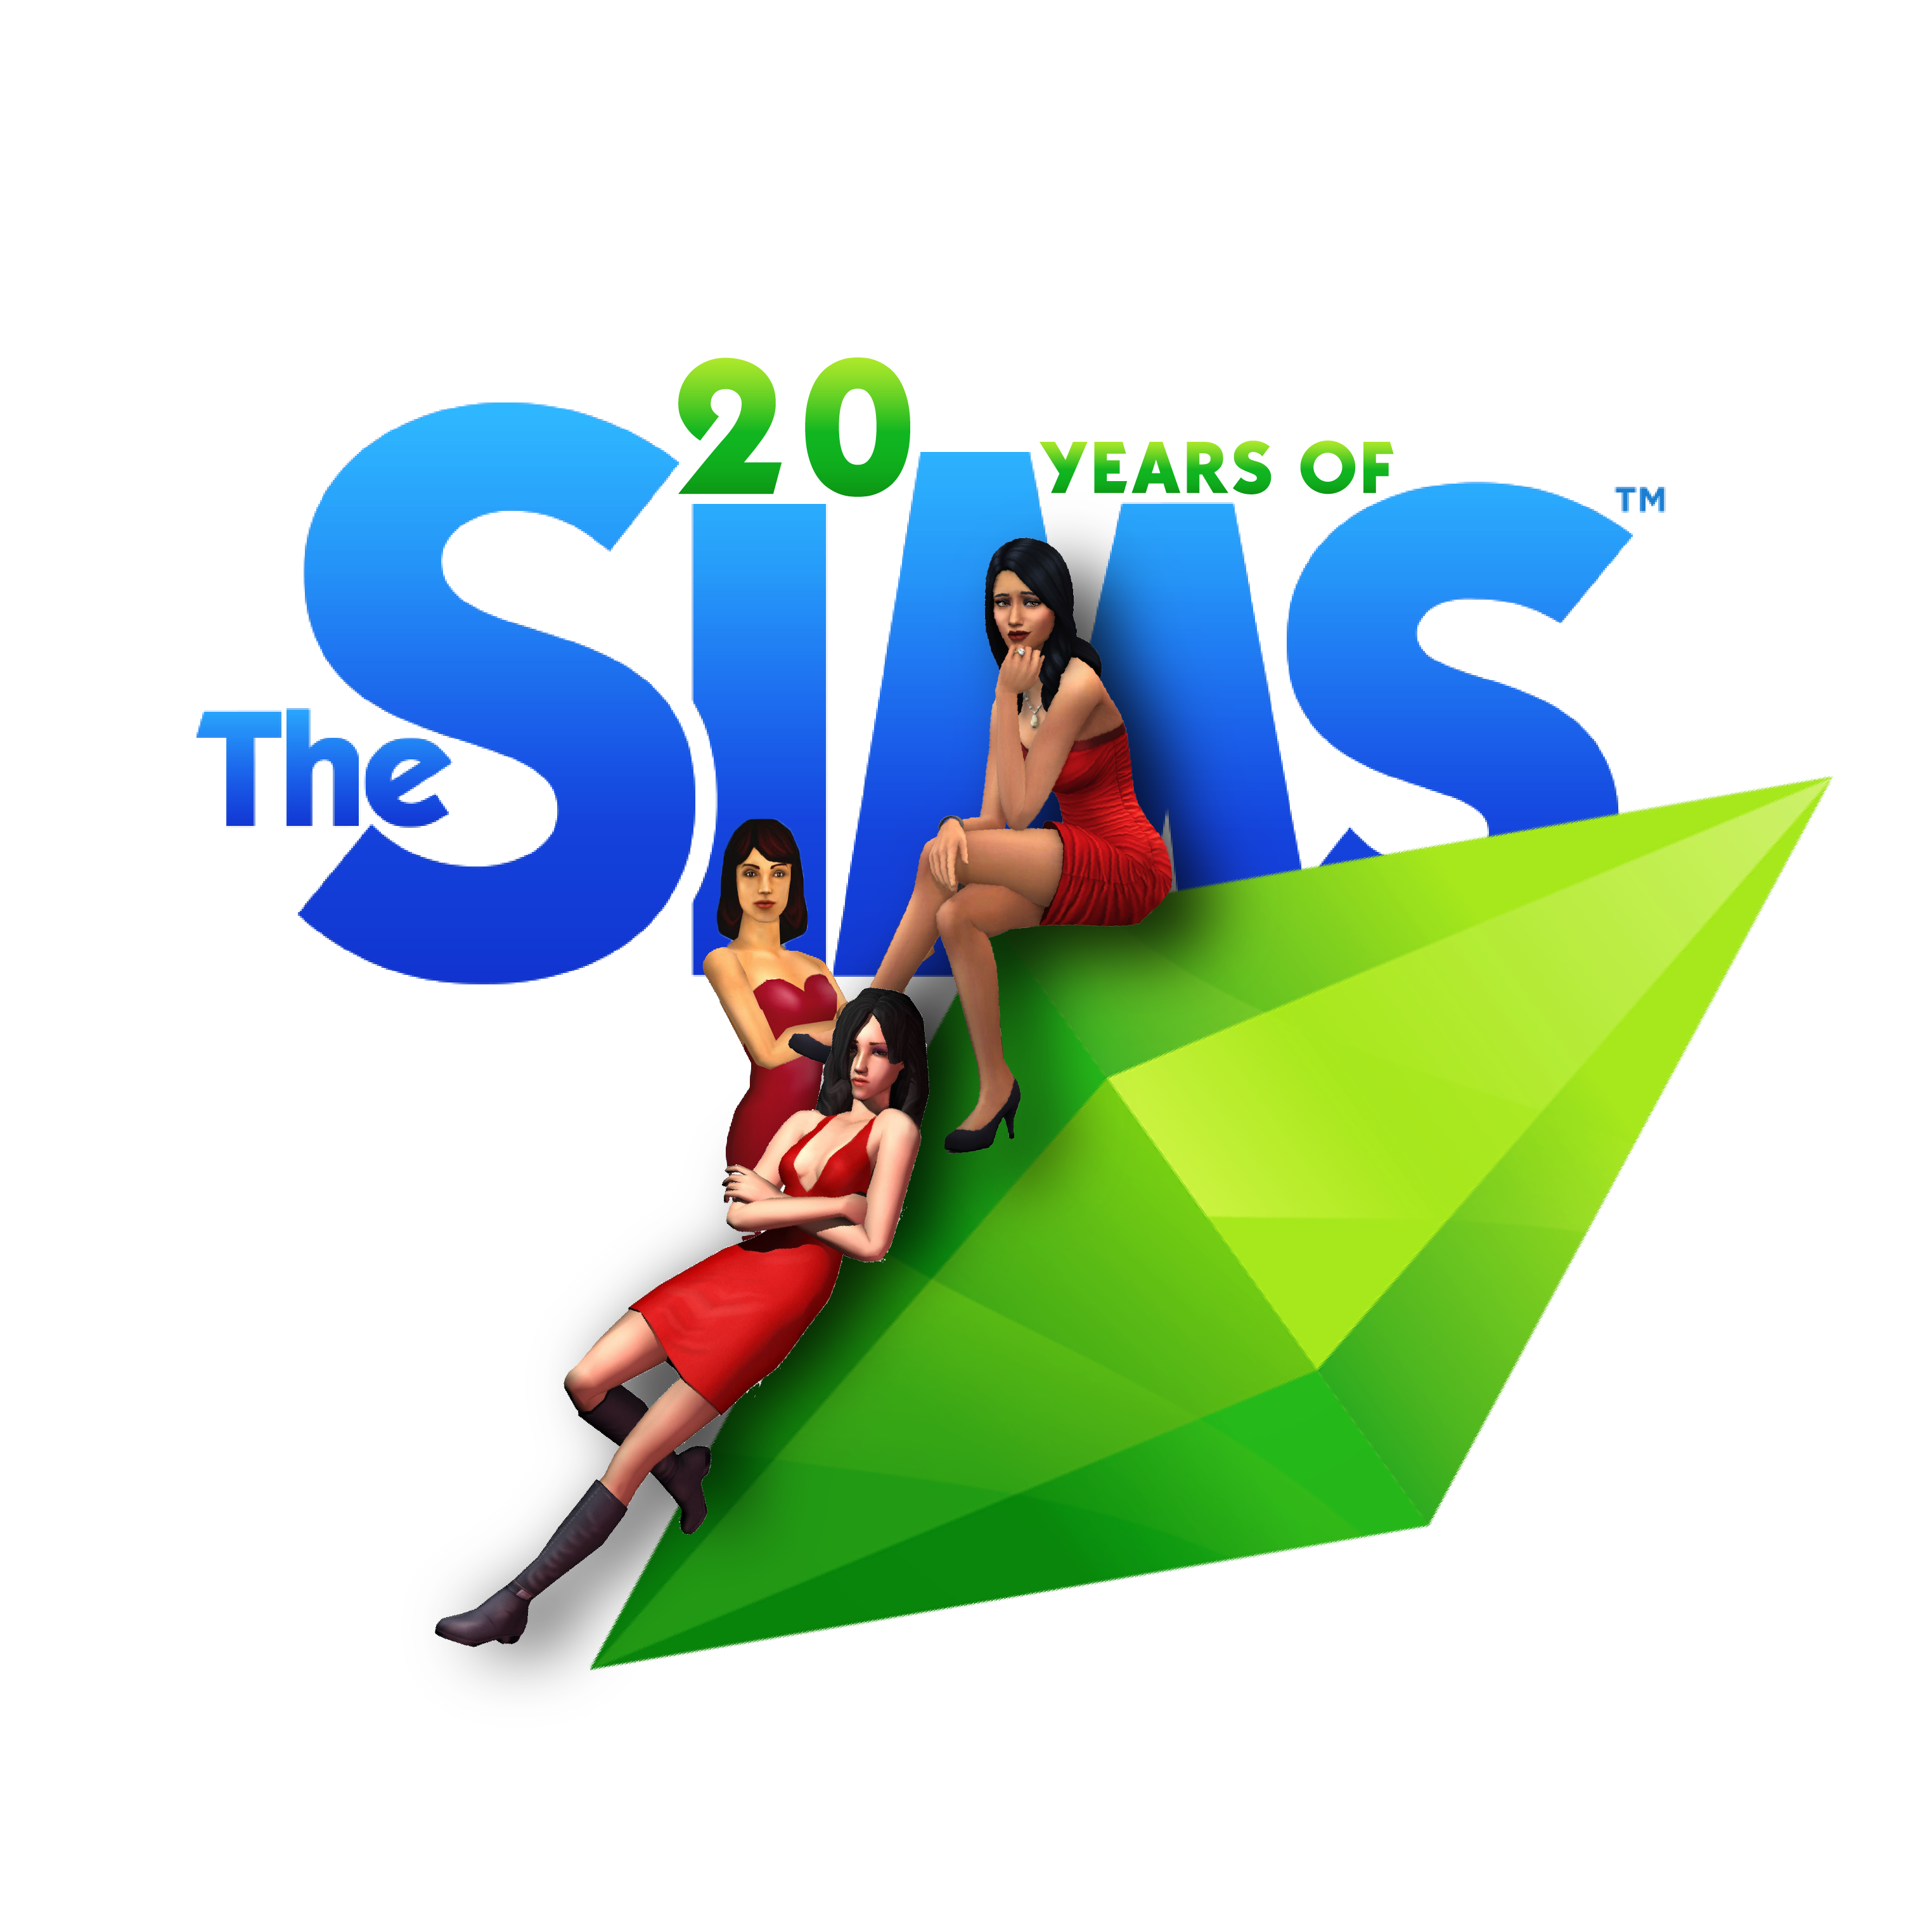 The-Sims20.png